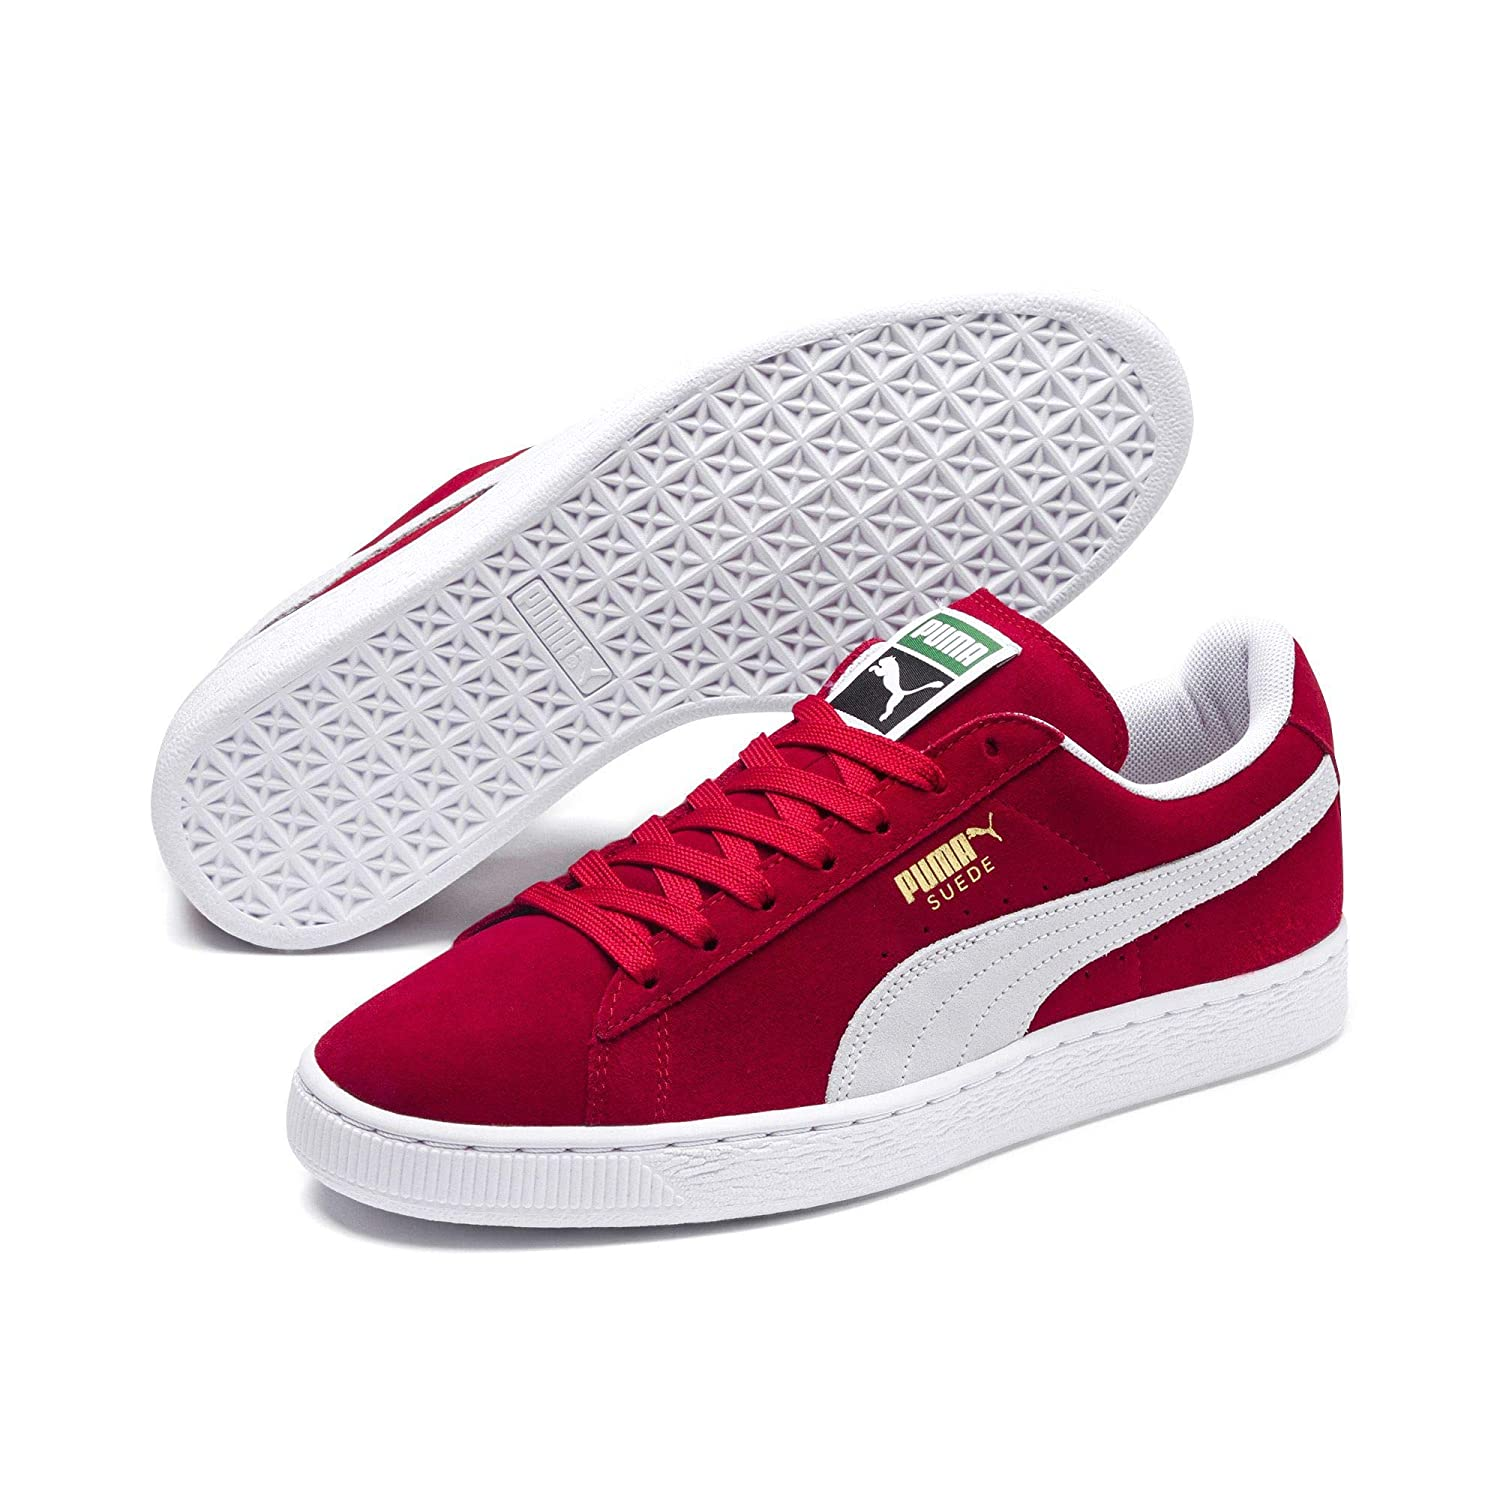 Puma Suede Classic+, Herren High-Top ROT-Weiß Sneaker Team Regal ROT-Weiß High-Top 1ef0fc